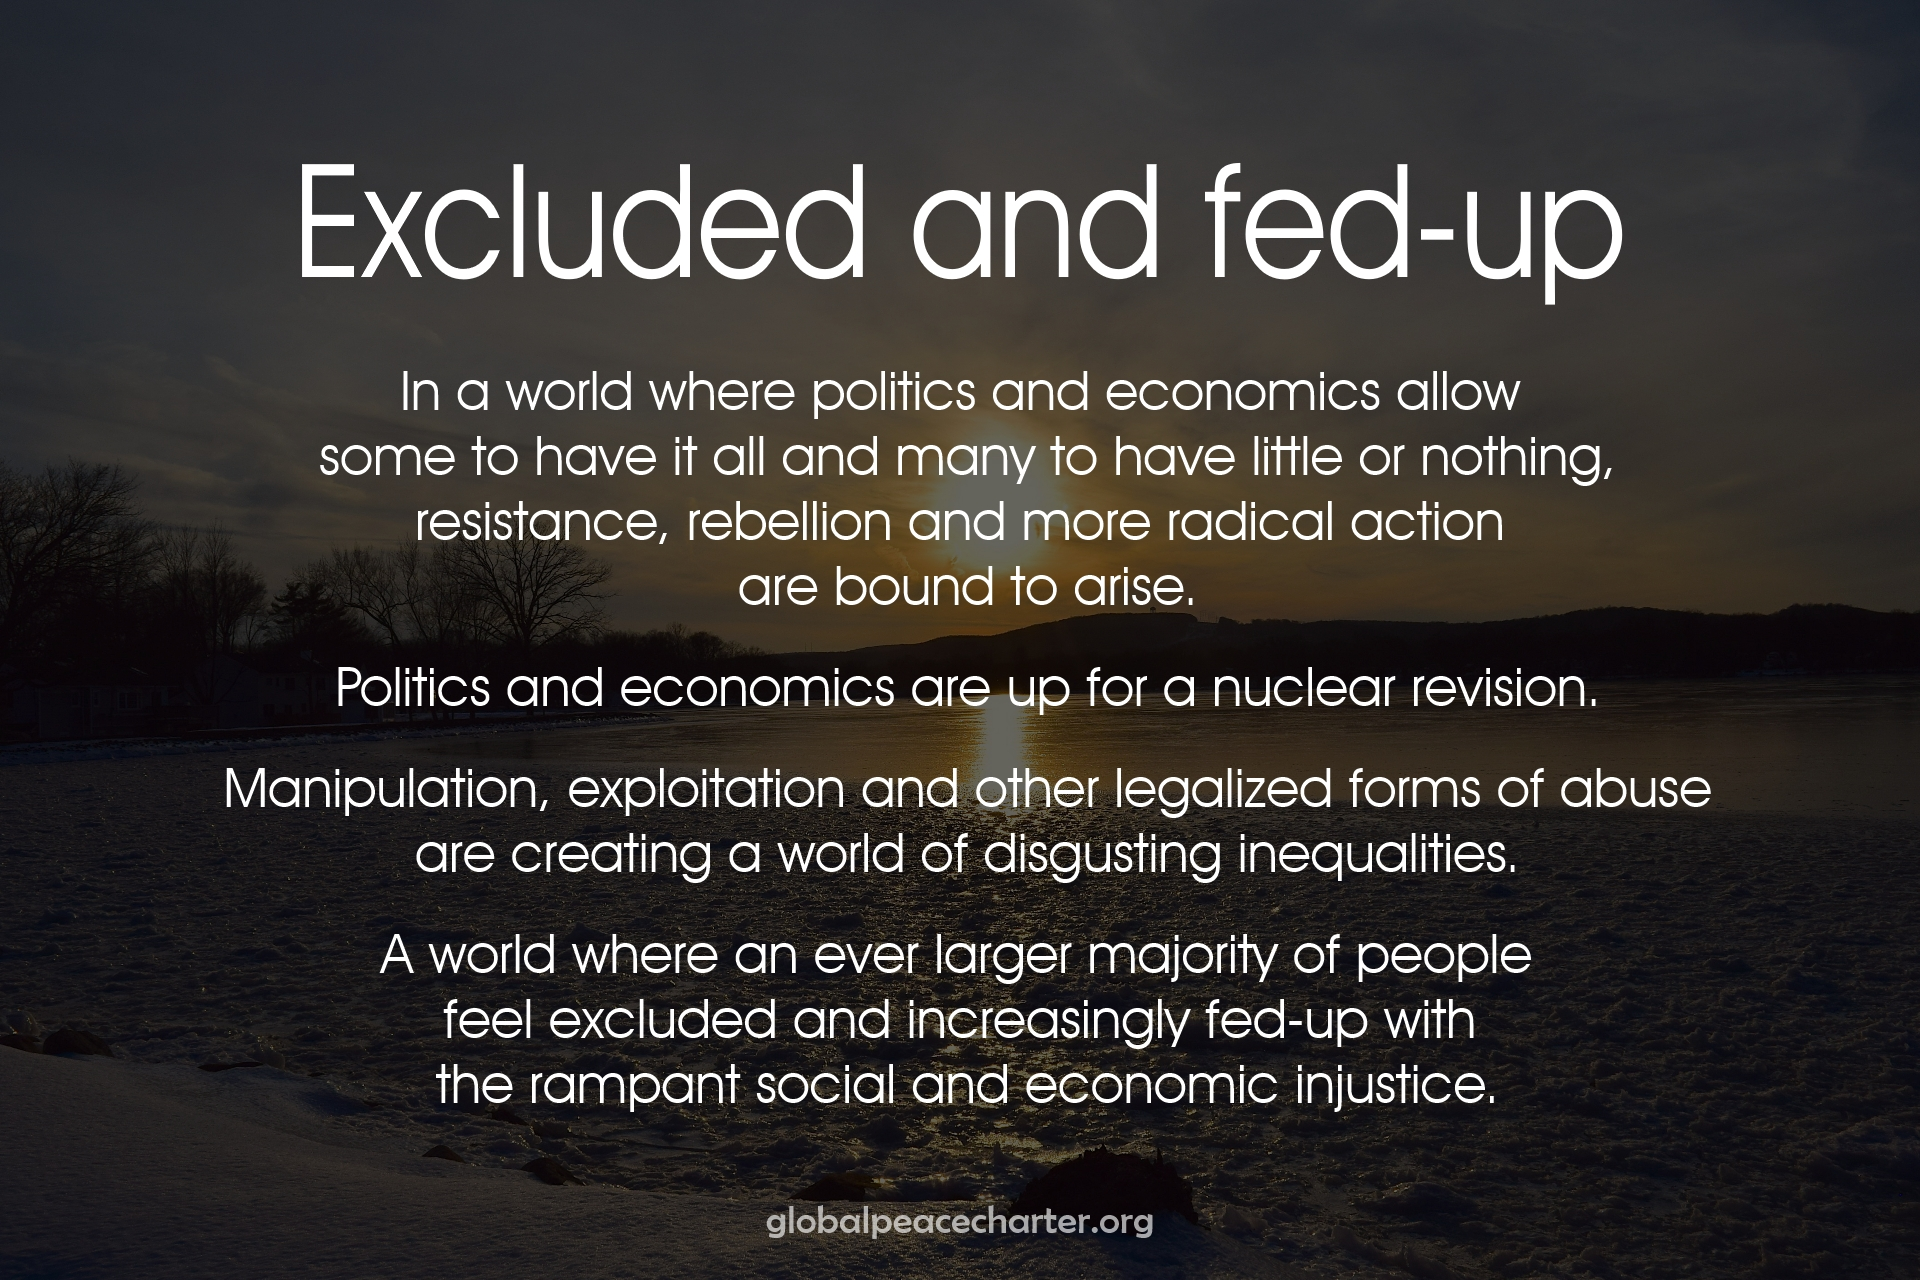 Excluded and fed-up